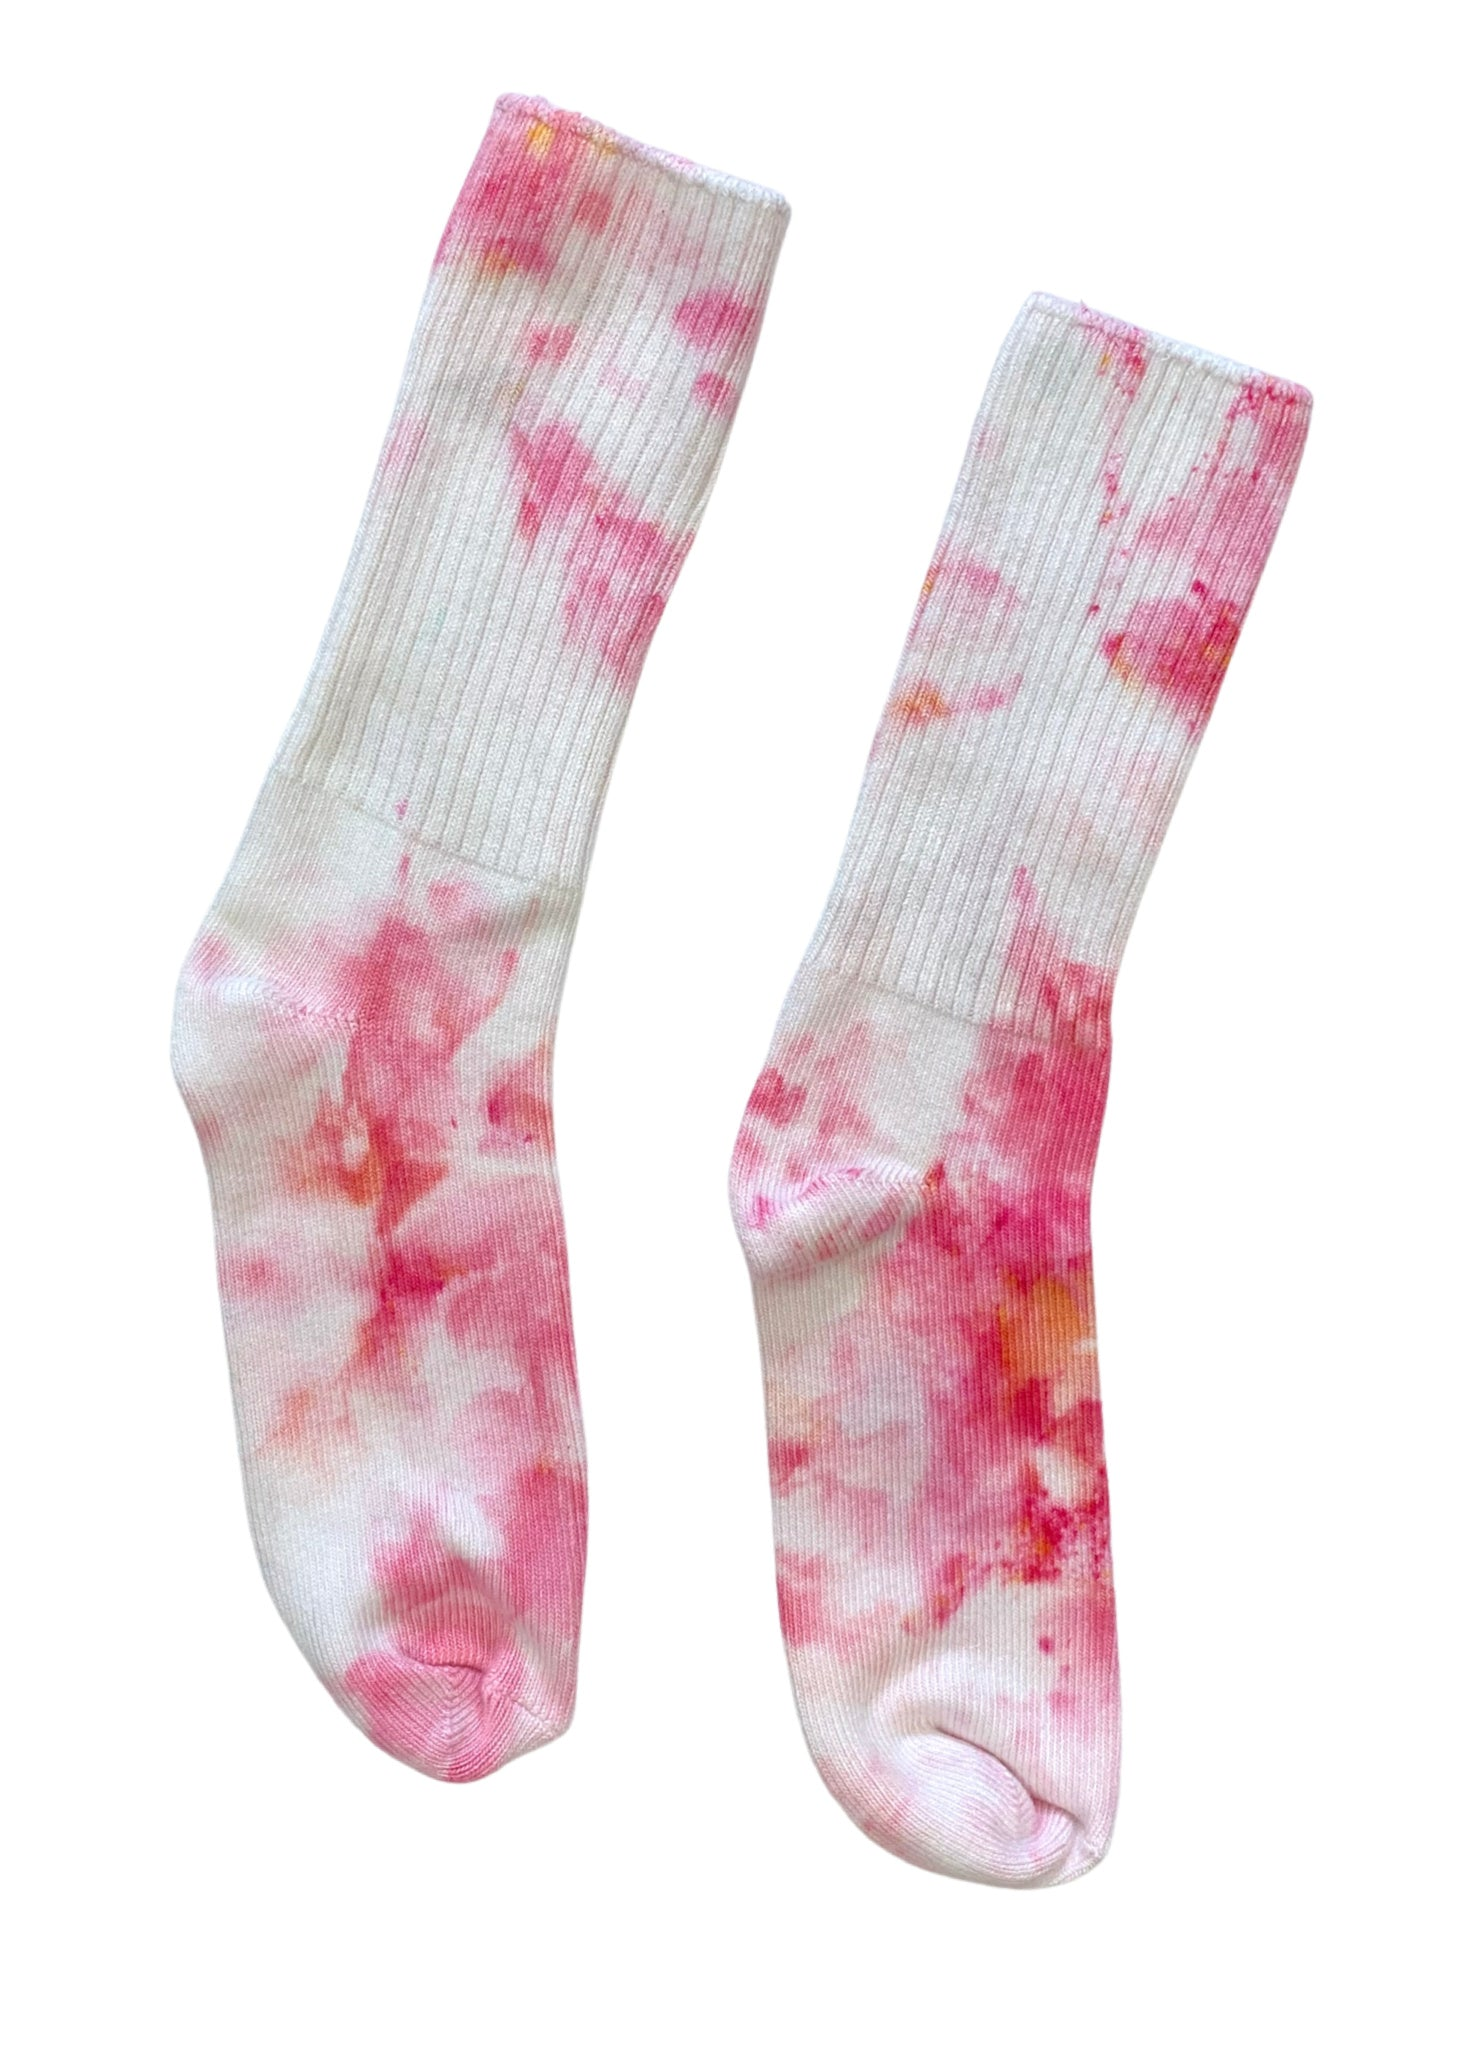 Hand Dyed Bamboo Rayon Crew Socks - Pinkie Panther - Dyetology